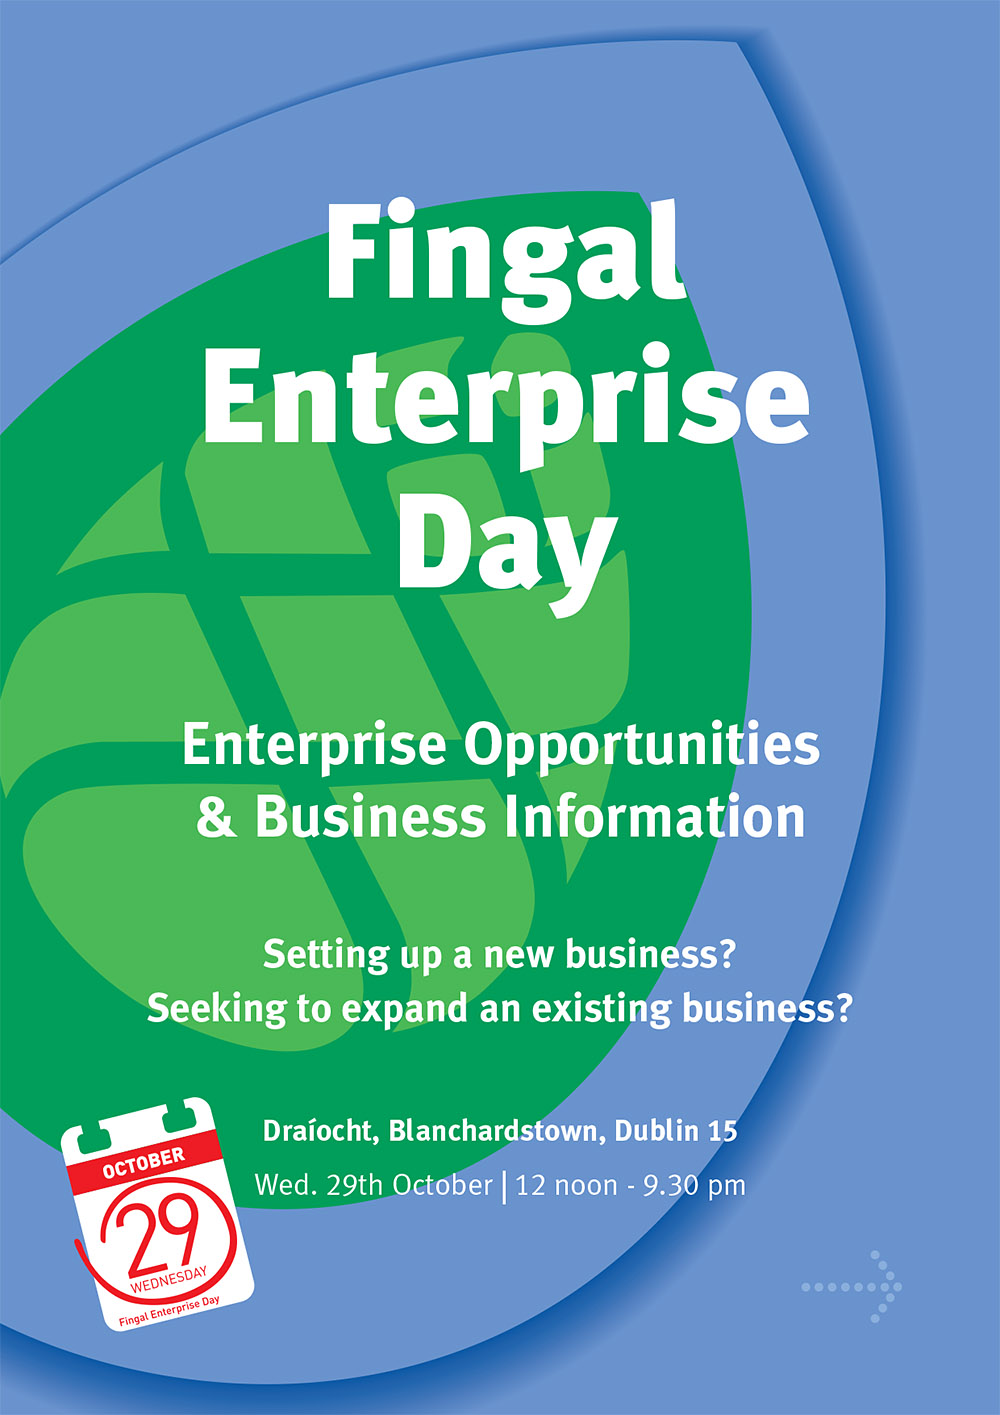 Fingal Enterprise Day poster